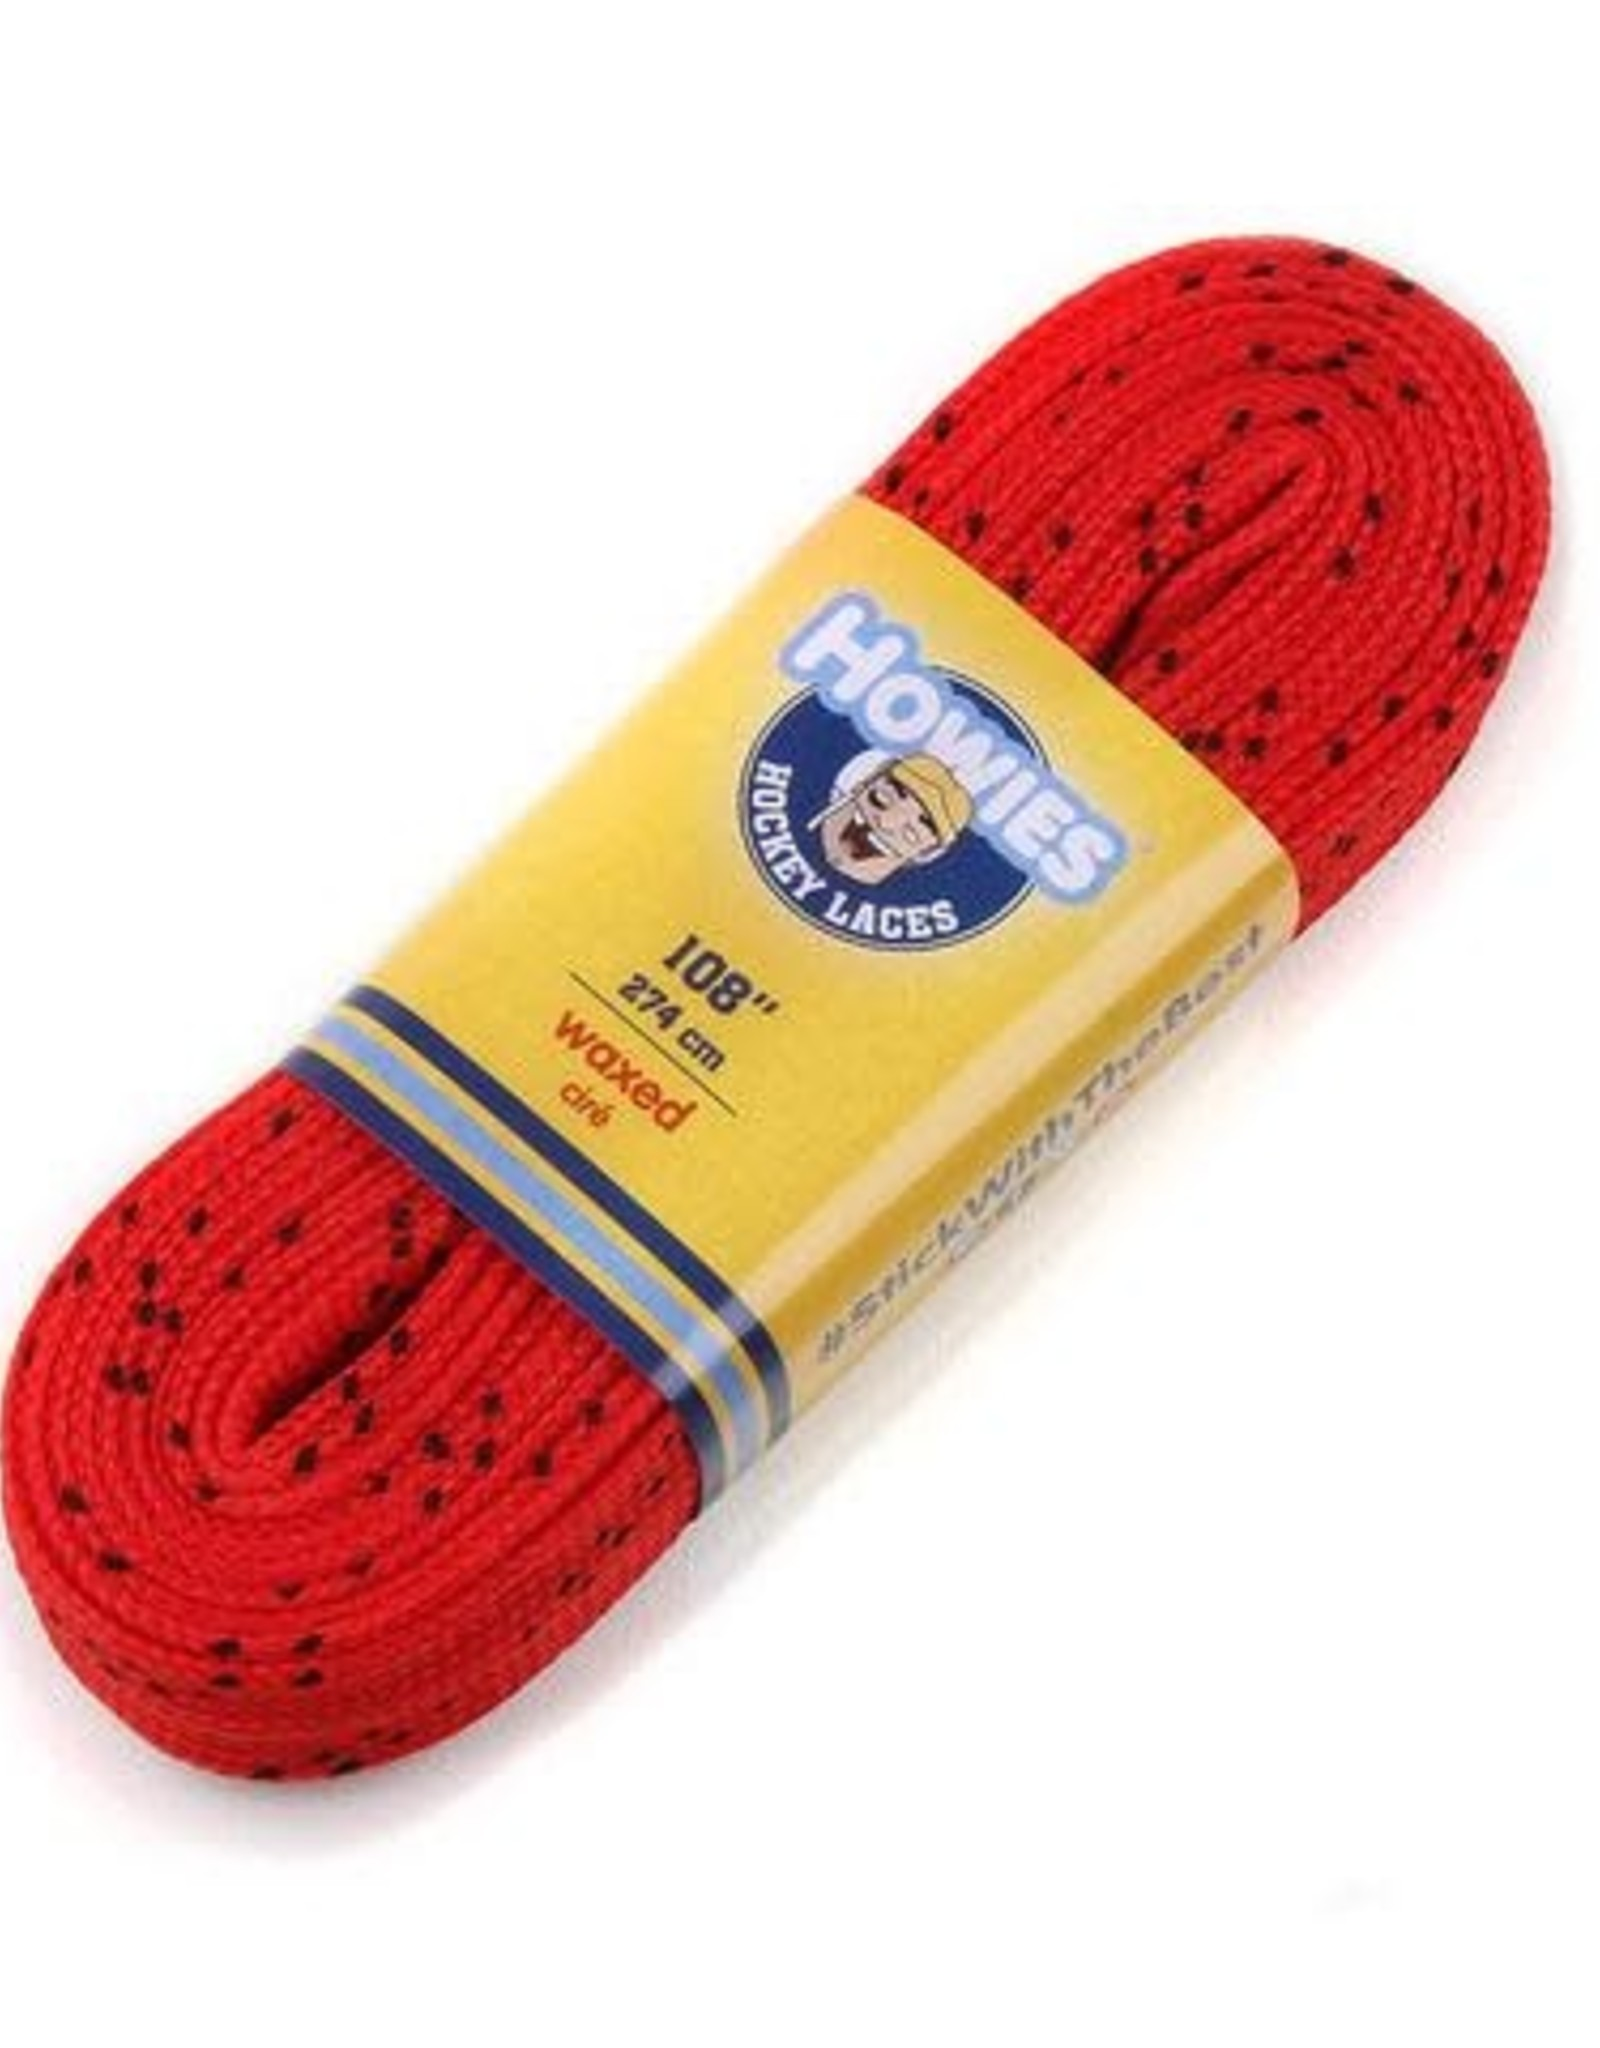 Howies Howies Red Waxed Laces